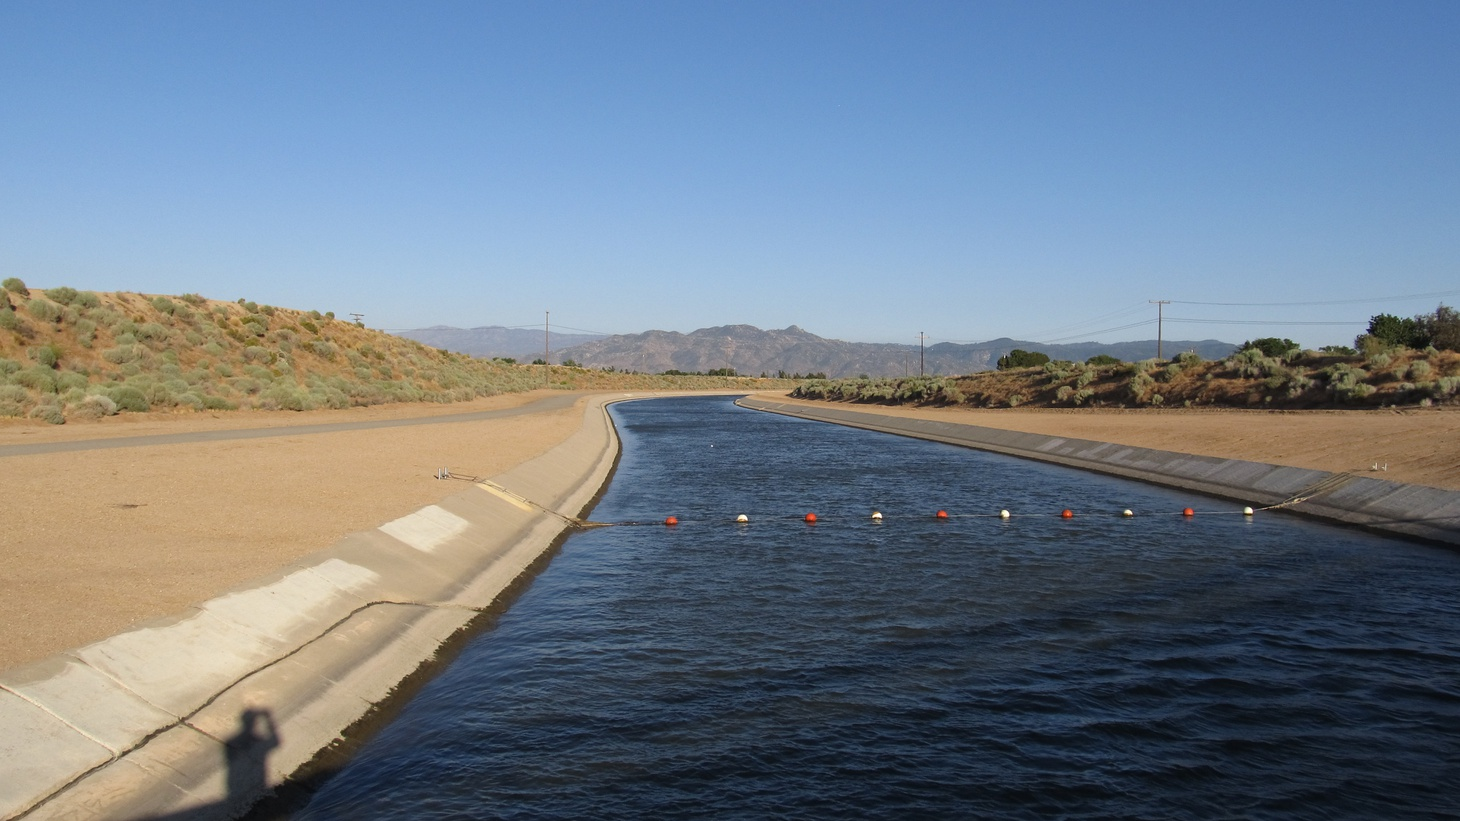 The Governor Edmund G. Brown California Aqueduct is a system of canals, tunnels, and pipelines that transports water collected from the Sierra Nevada Mountains and valleys of Northern and Central California to Southern California. The Department of Water Resources (DWR) operates and maintains the California Aqueduct.